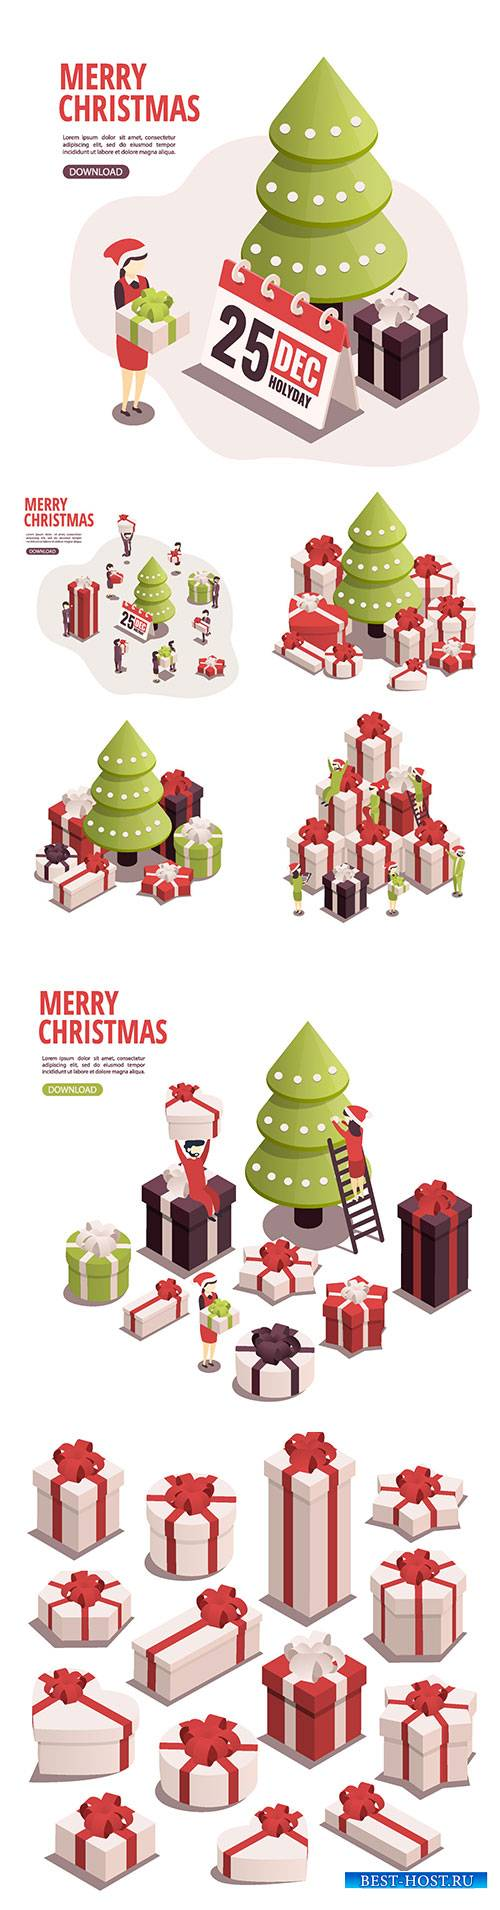 Isometric illustration for christmas and new year